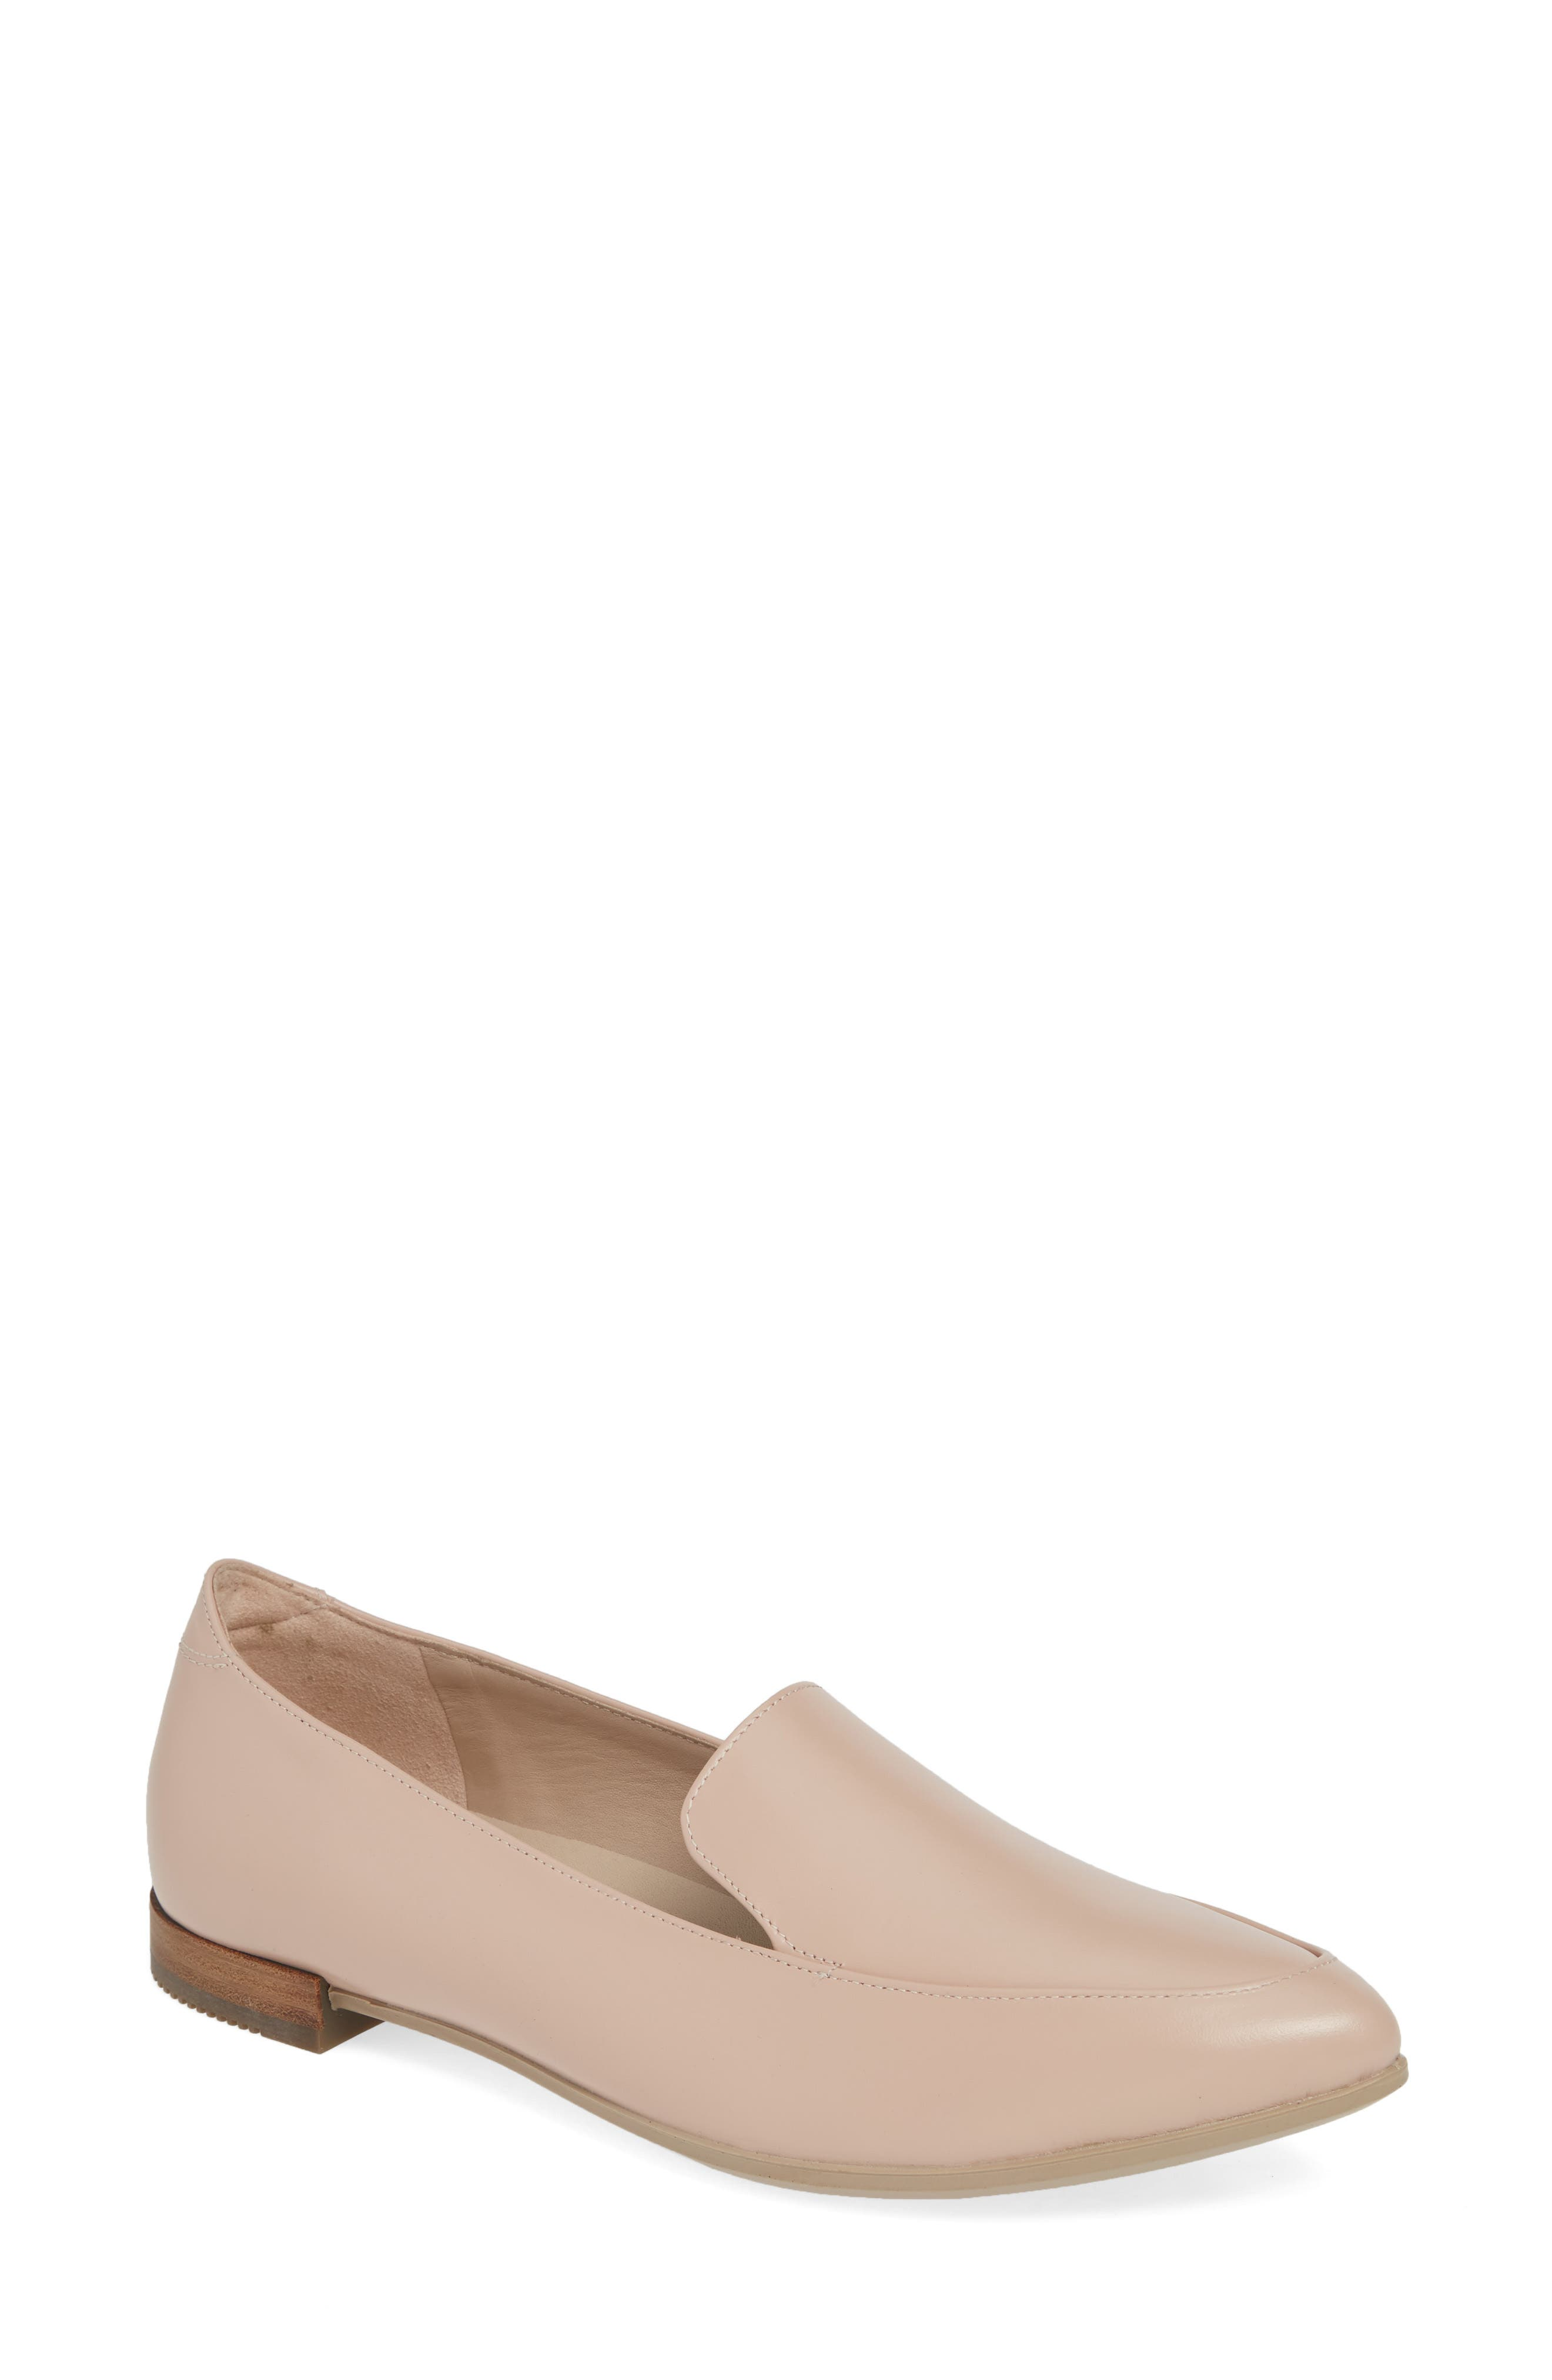 ECCO Shape Pointy Ballerina II Flat, Main, color, ROSE DUST LEATHER